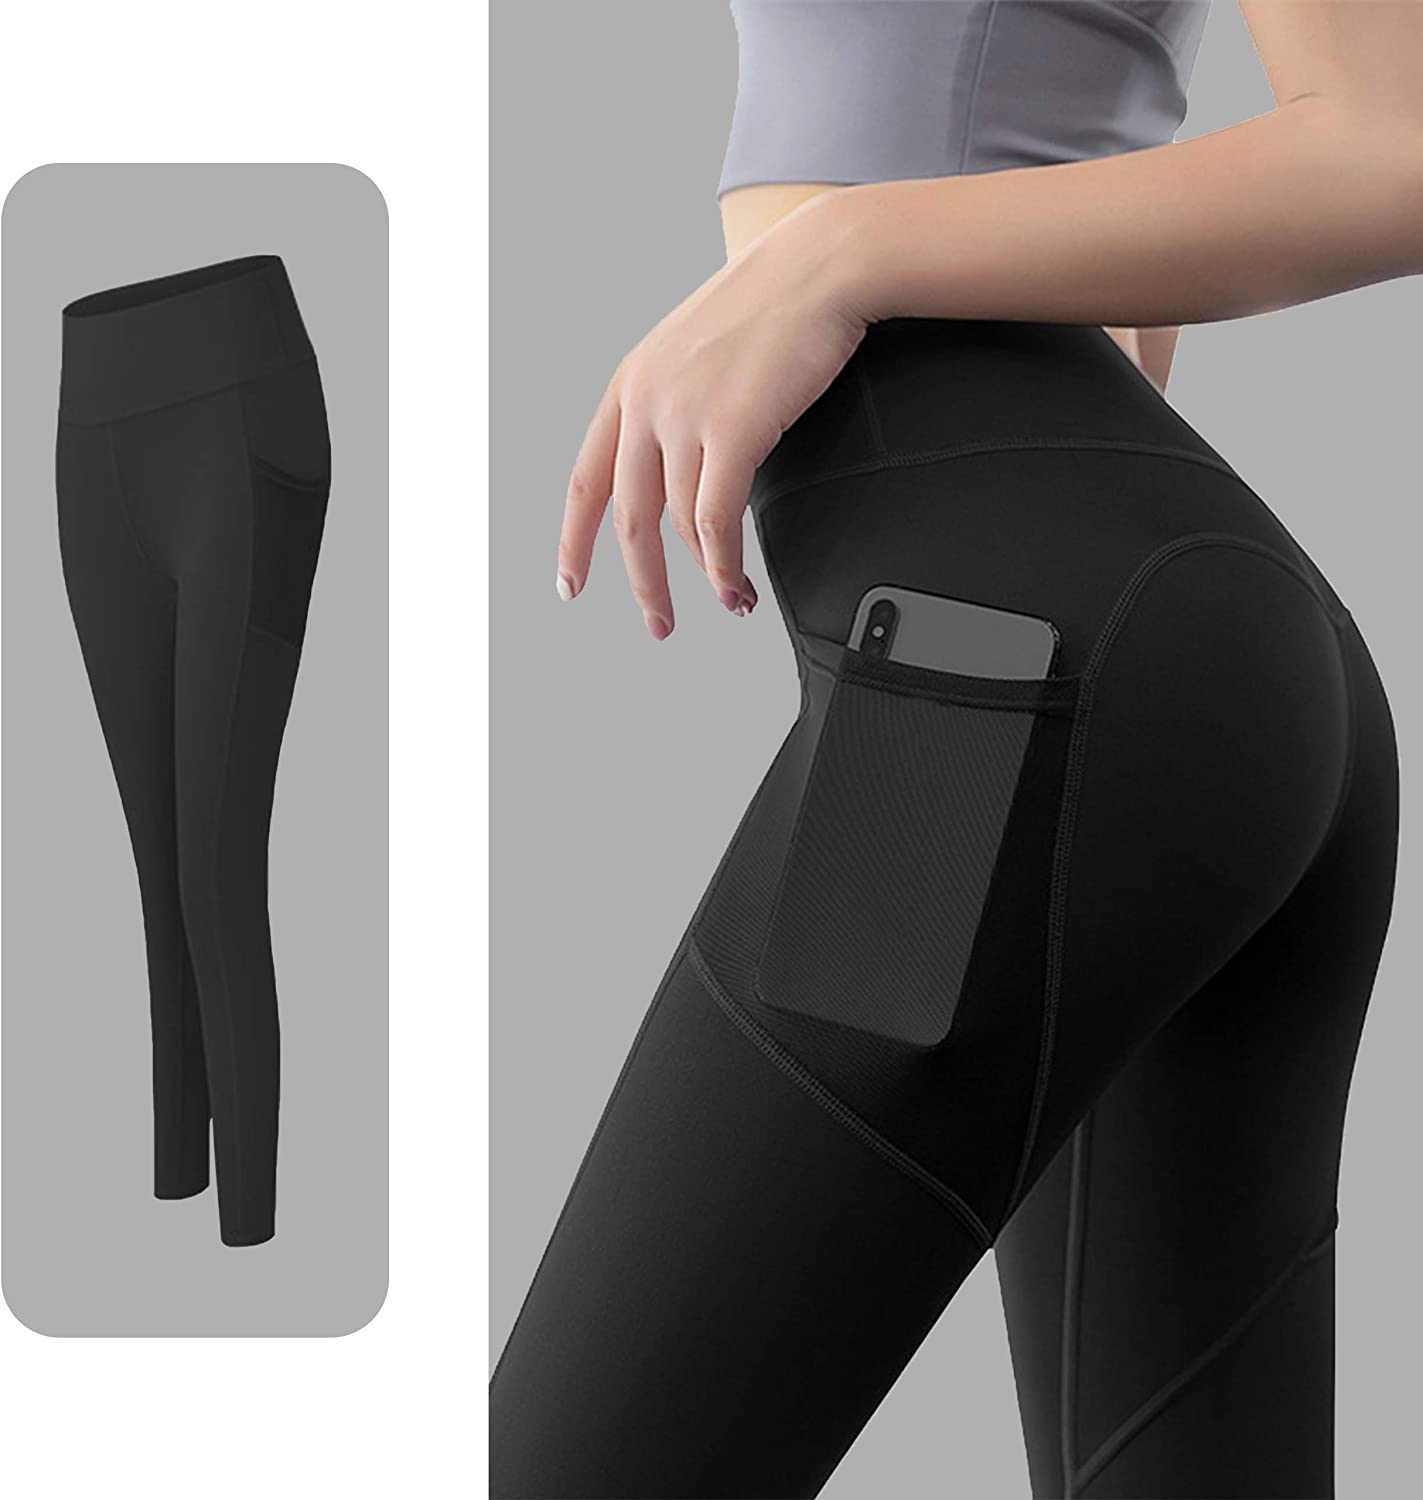 Sigeeya Womens Quick-Dry Yoga Pants High Waist Workout Gym Sweatpants Tummy Control Leggings with Pockets